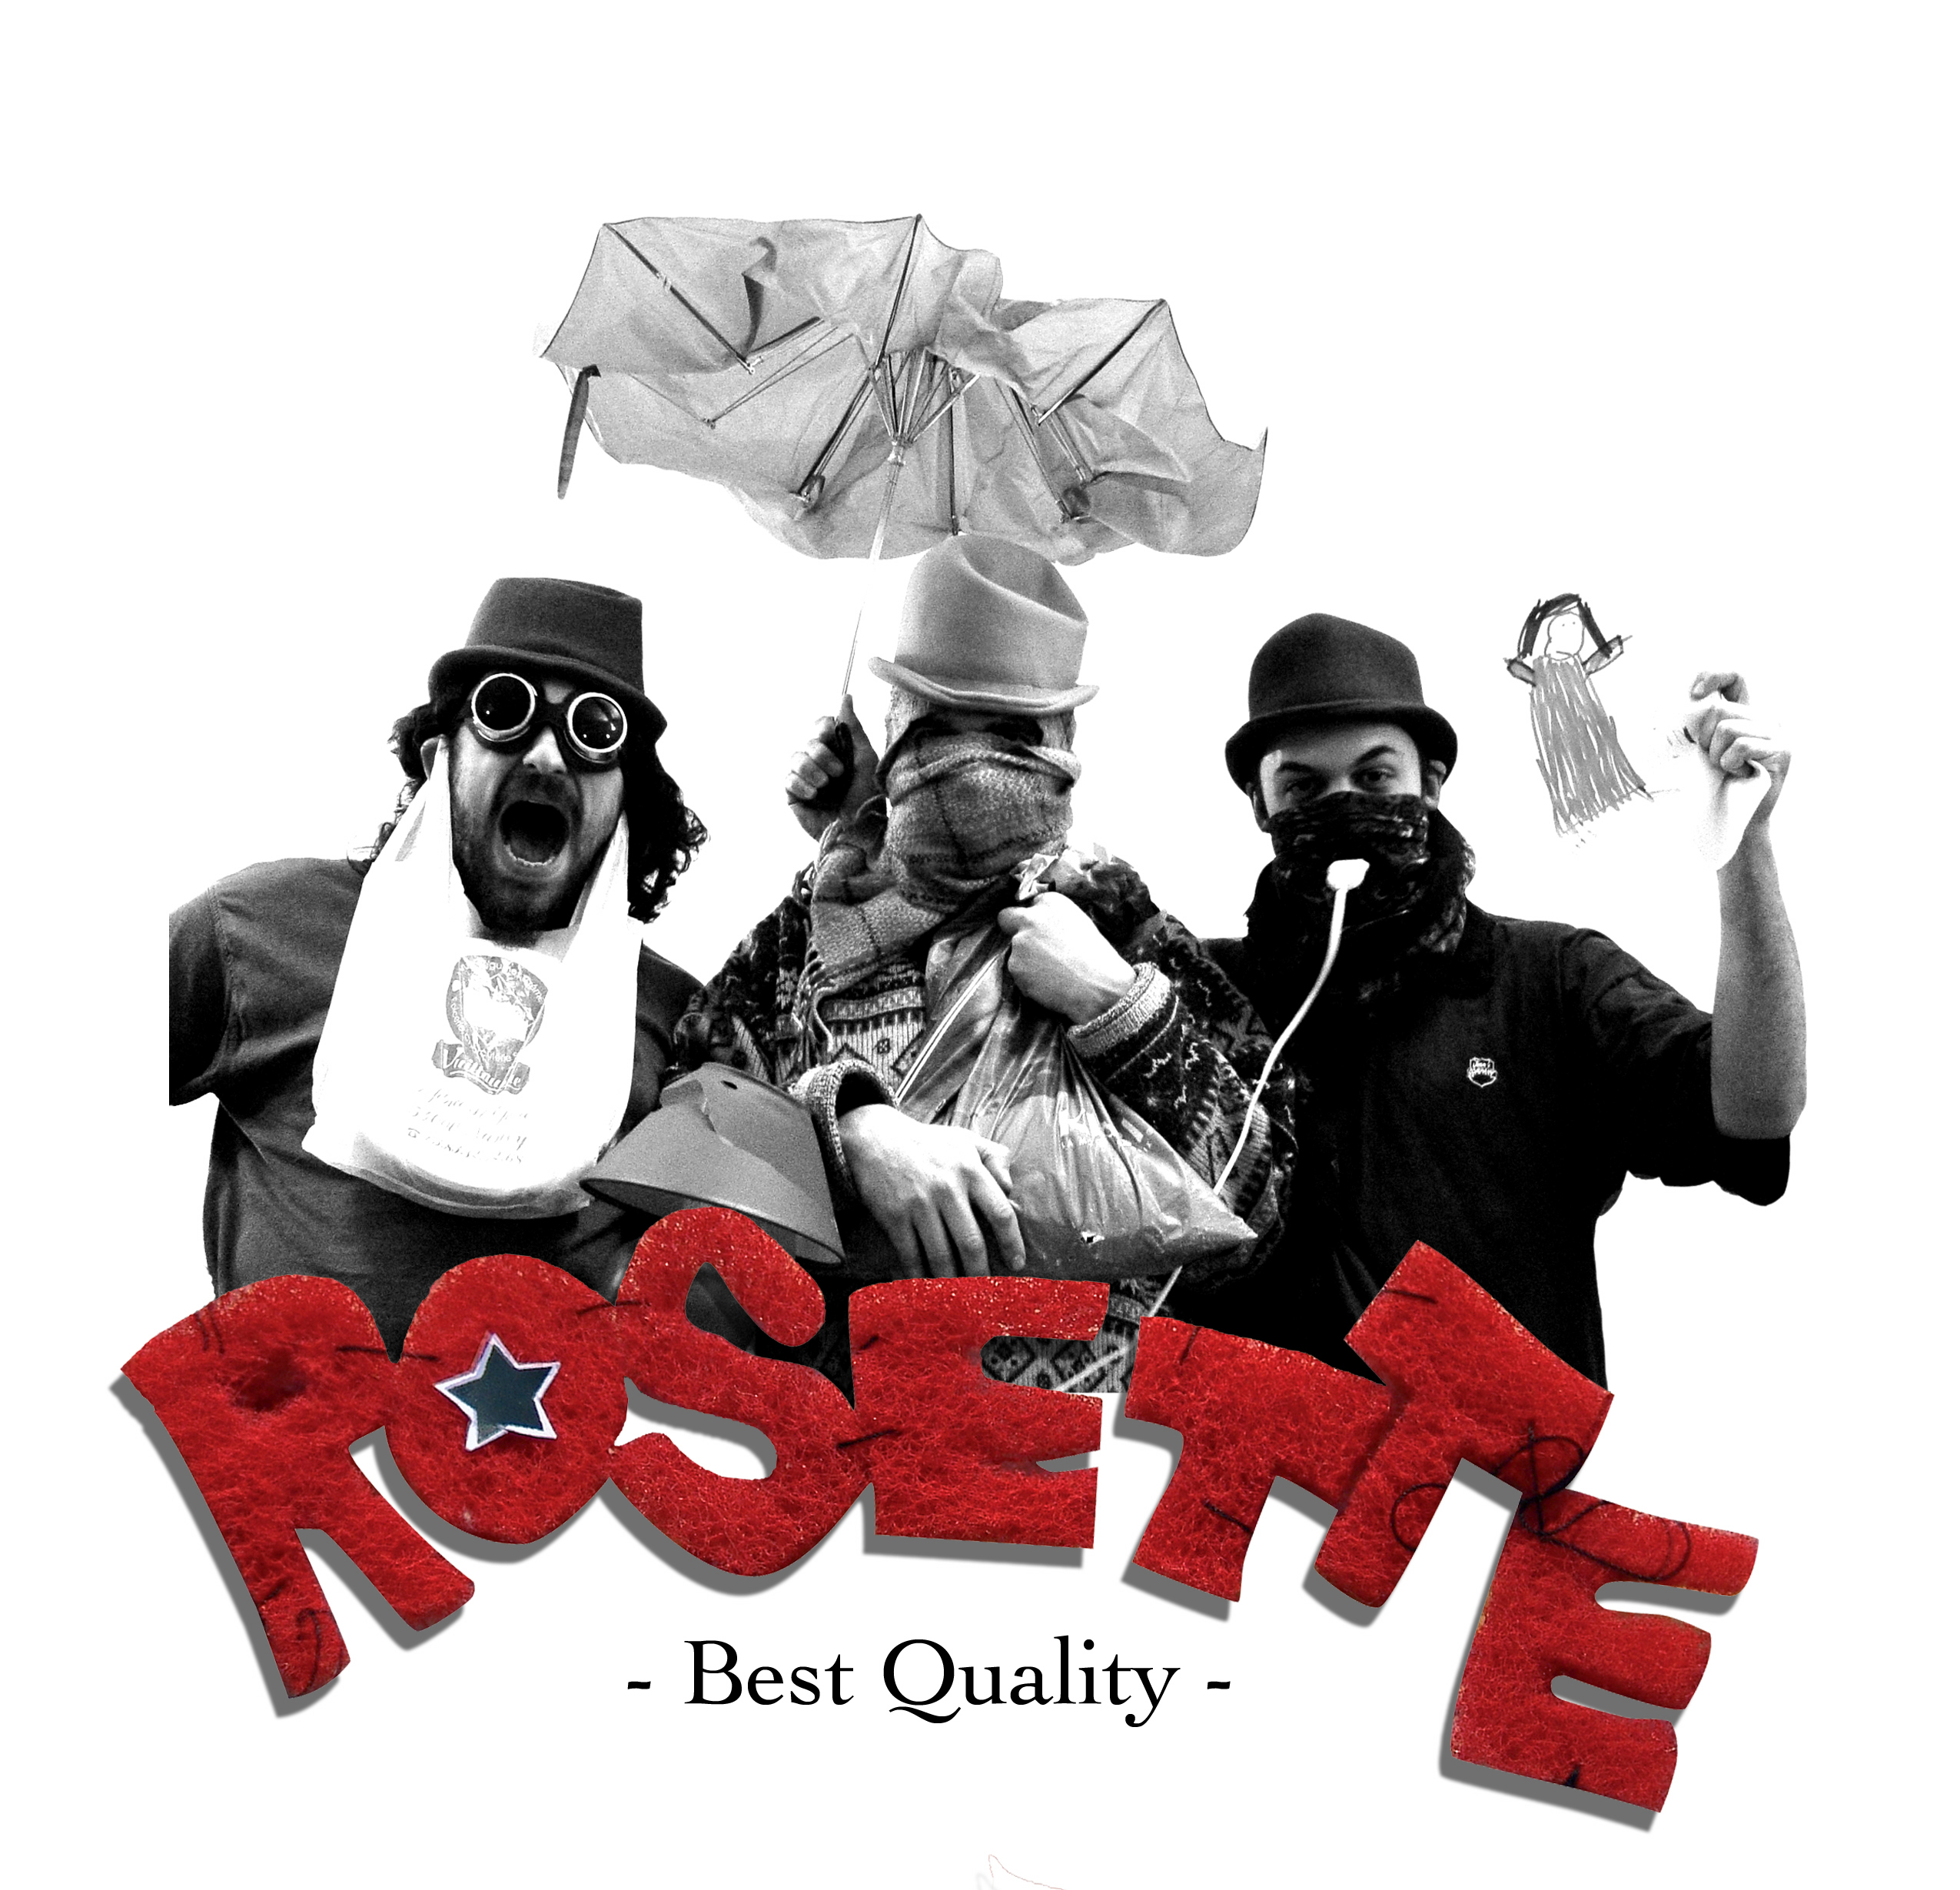 Rosette / photo : Sam Parmentier